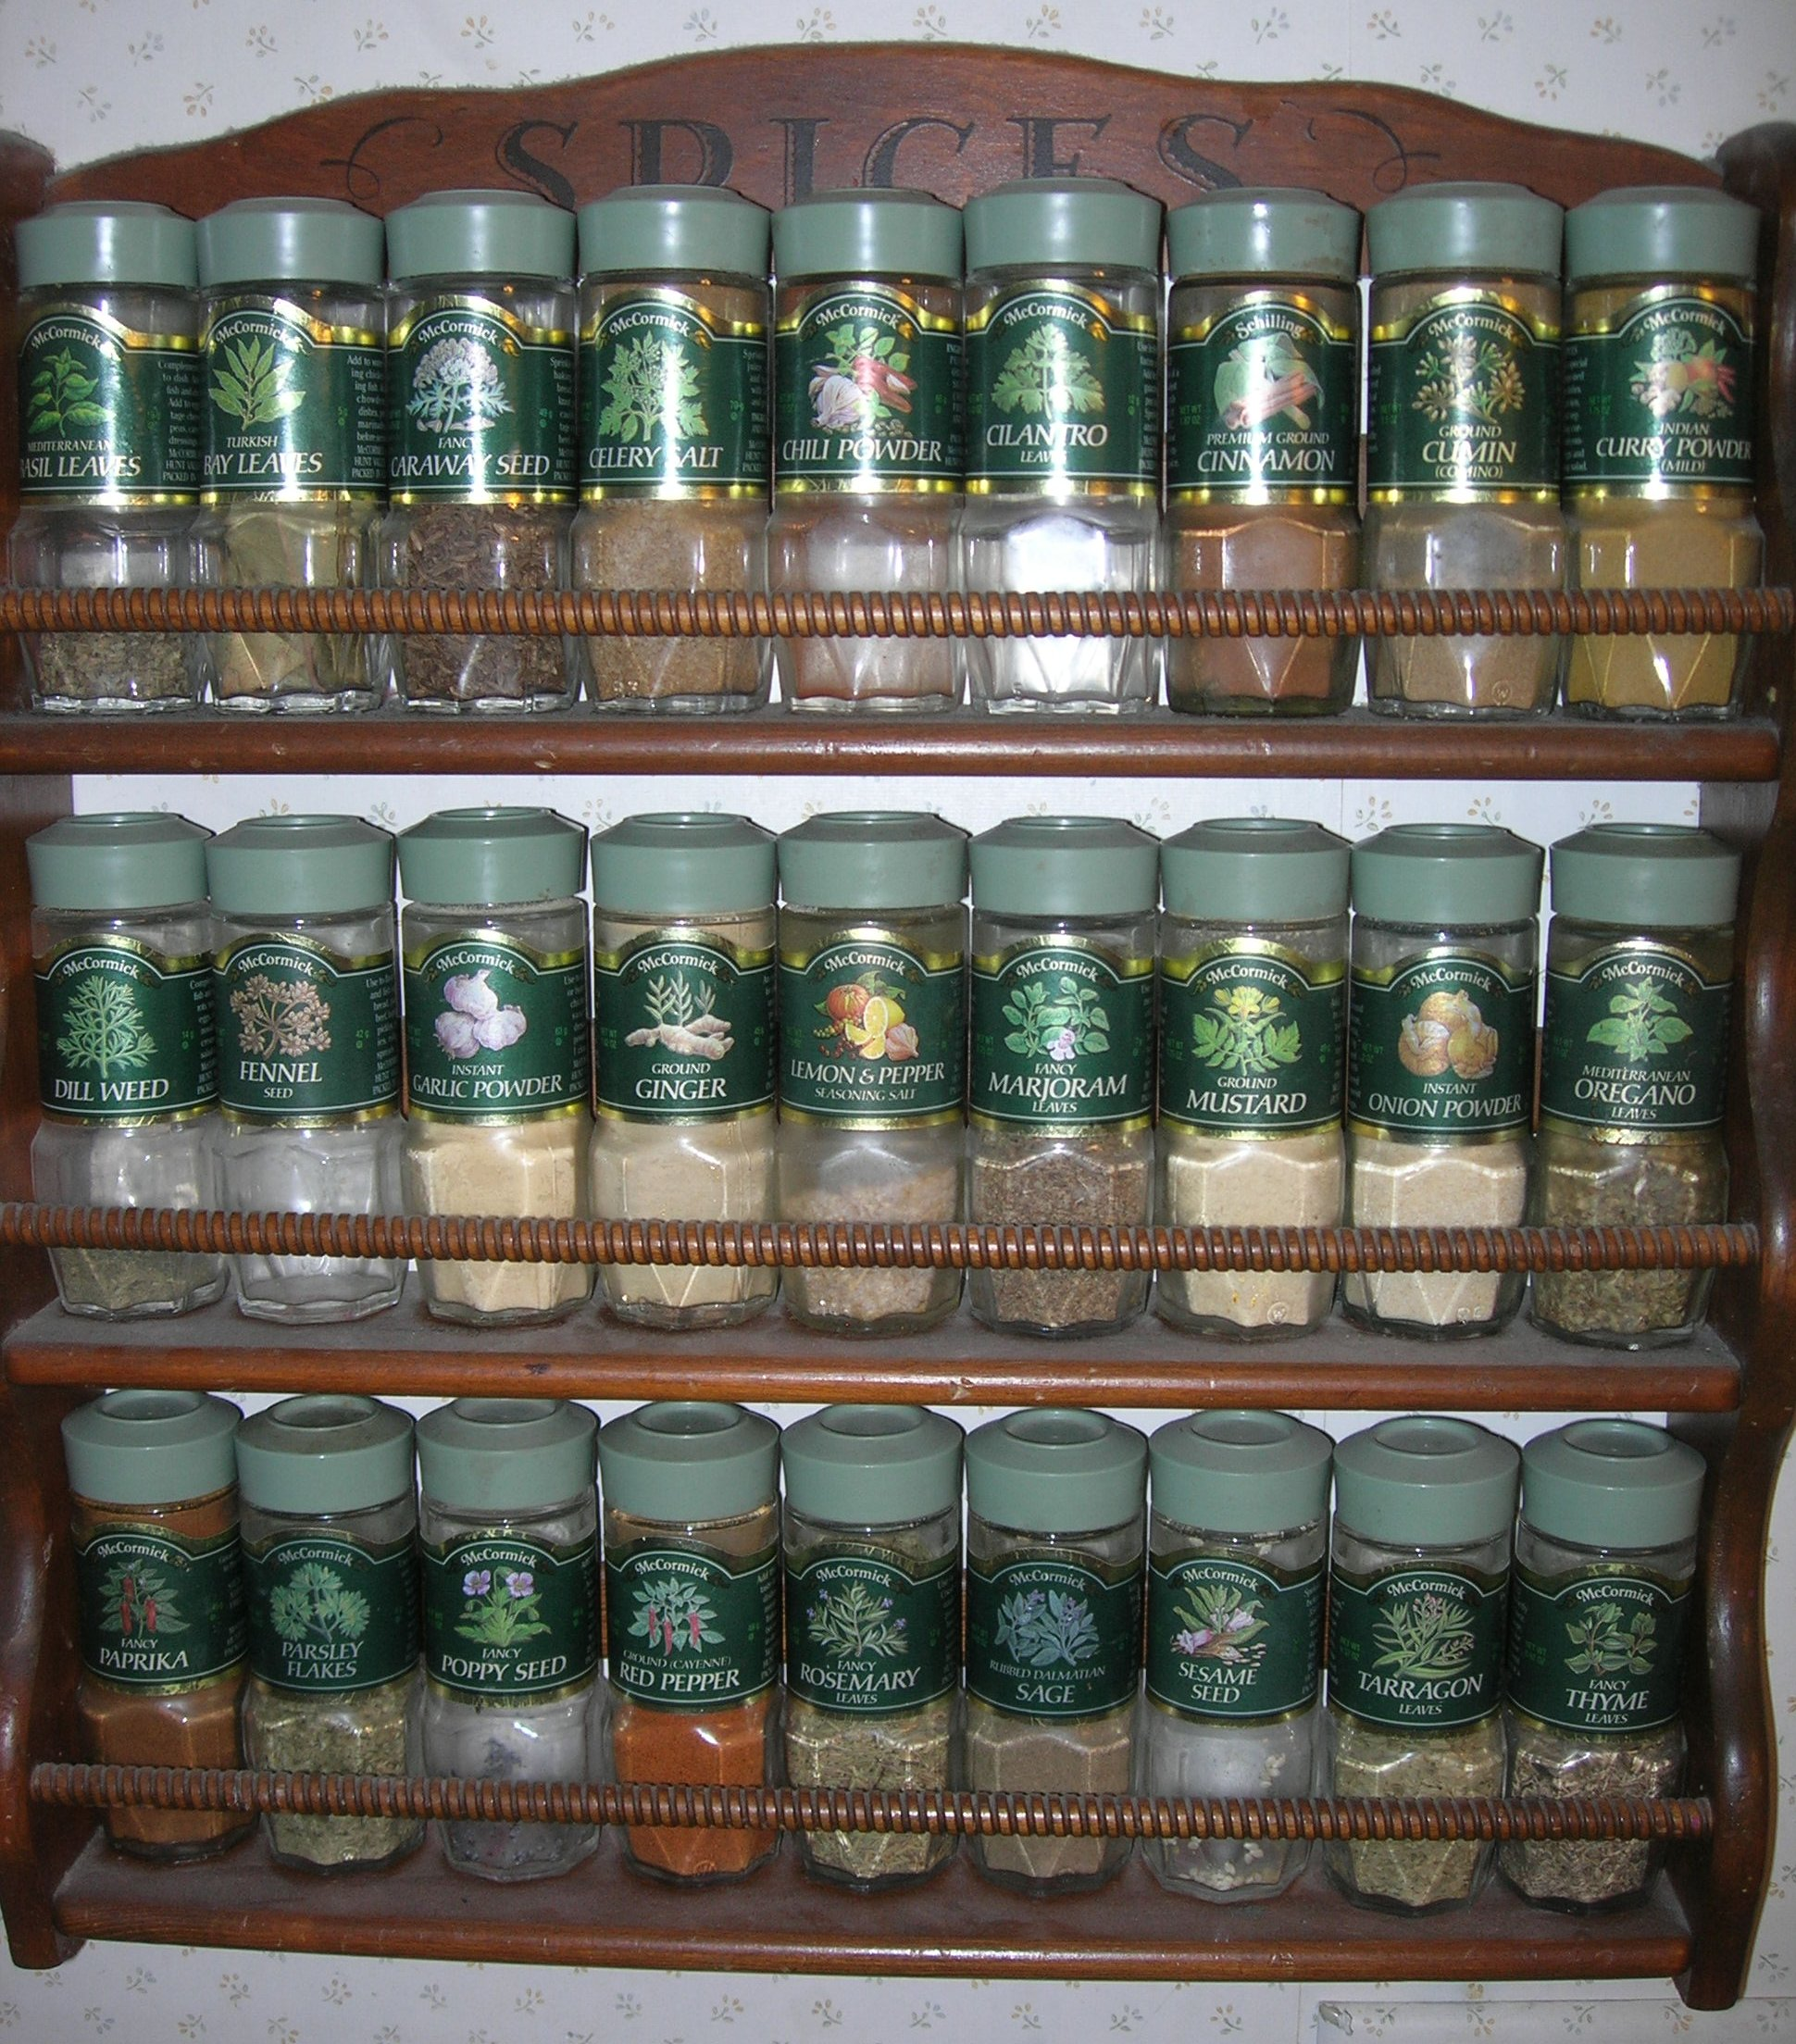 Wall Mount Spice Rack Plans: Spice Rack Plans Free